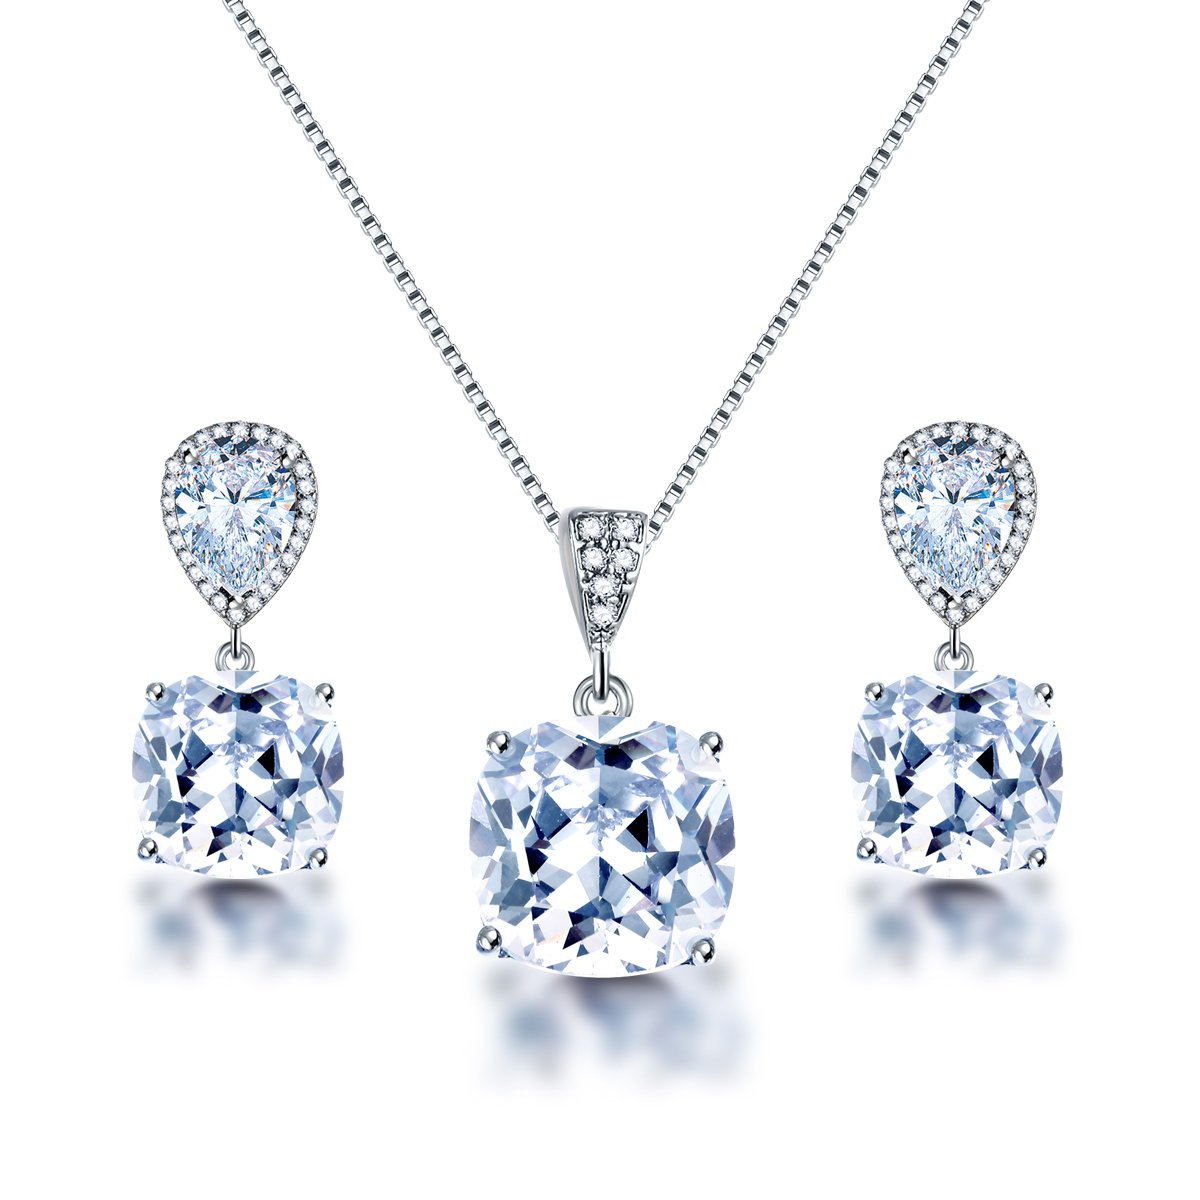 AMYJANE Elegant Jewelry Set for Women - Silver Teardrop Clear Cubic Zirconia Crystal Rhinestone Drop Earrings and Necklace Bridal Jewelry Sets Best Gift for Bridesmaids